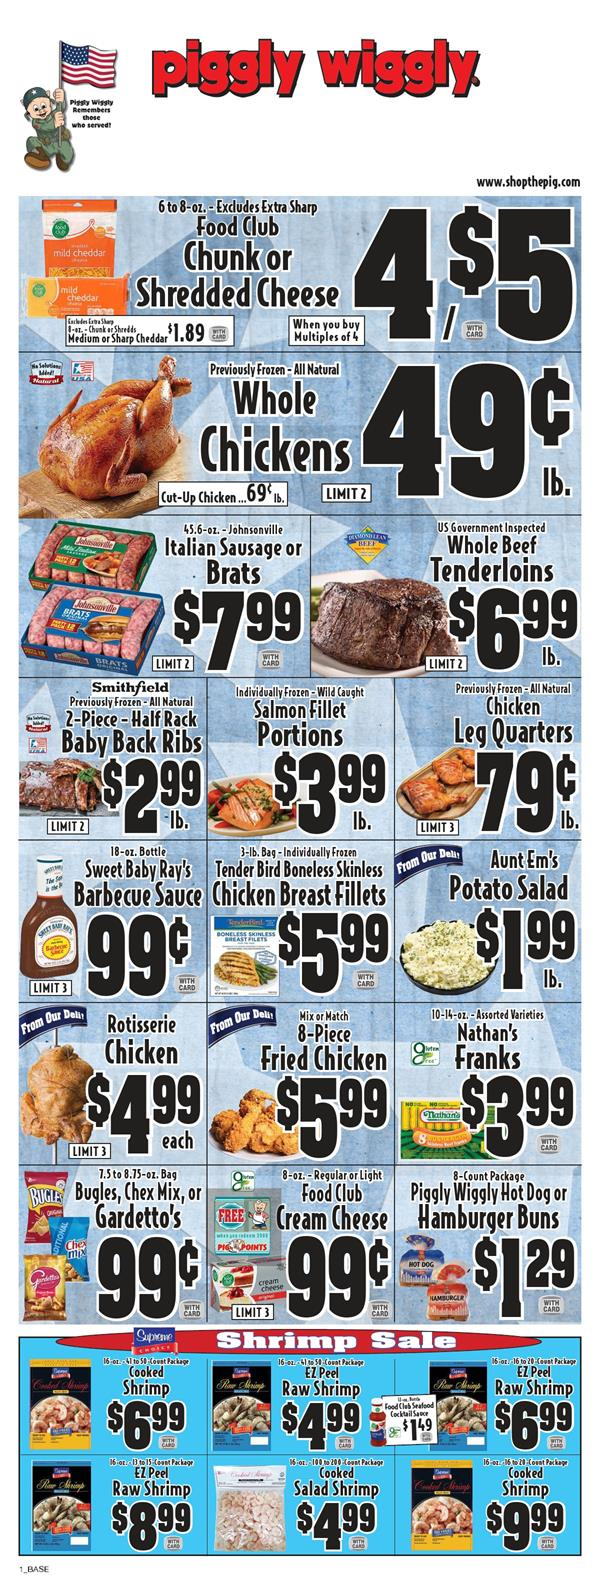 piggly wiggly final may ad valid from may 20 26 2020